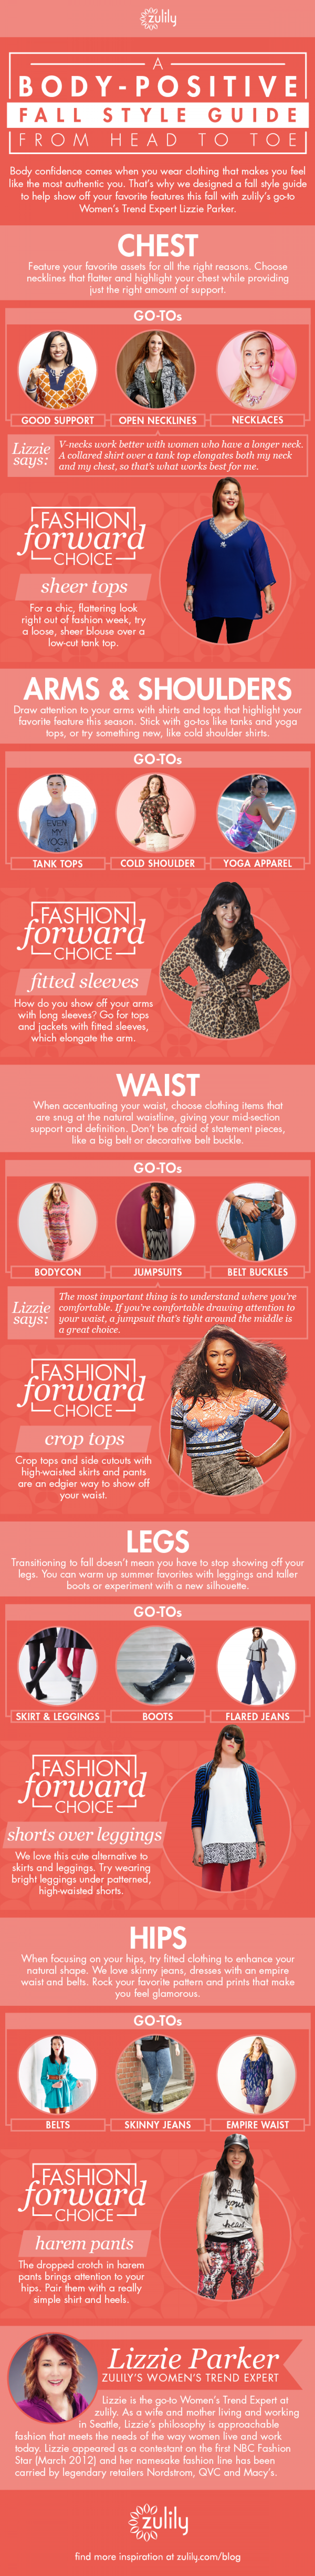 A Body Positive Style Guide From Head To Toe